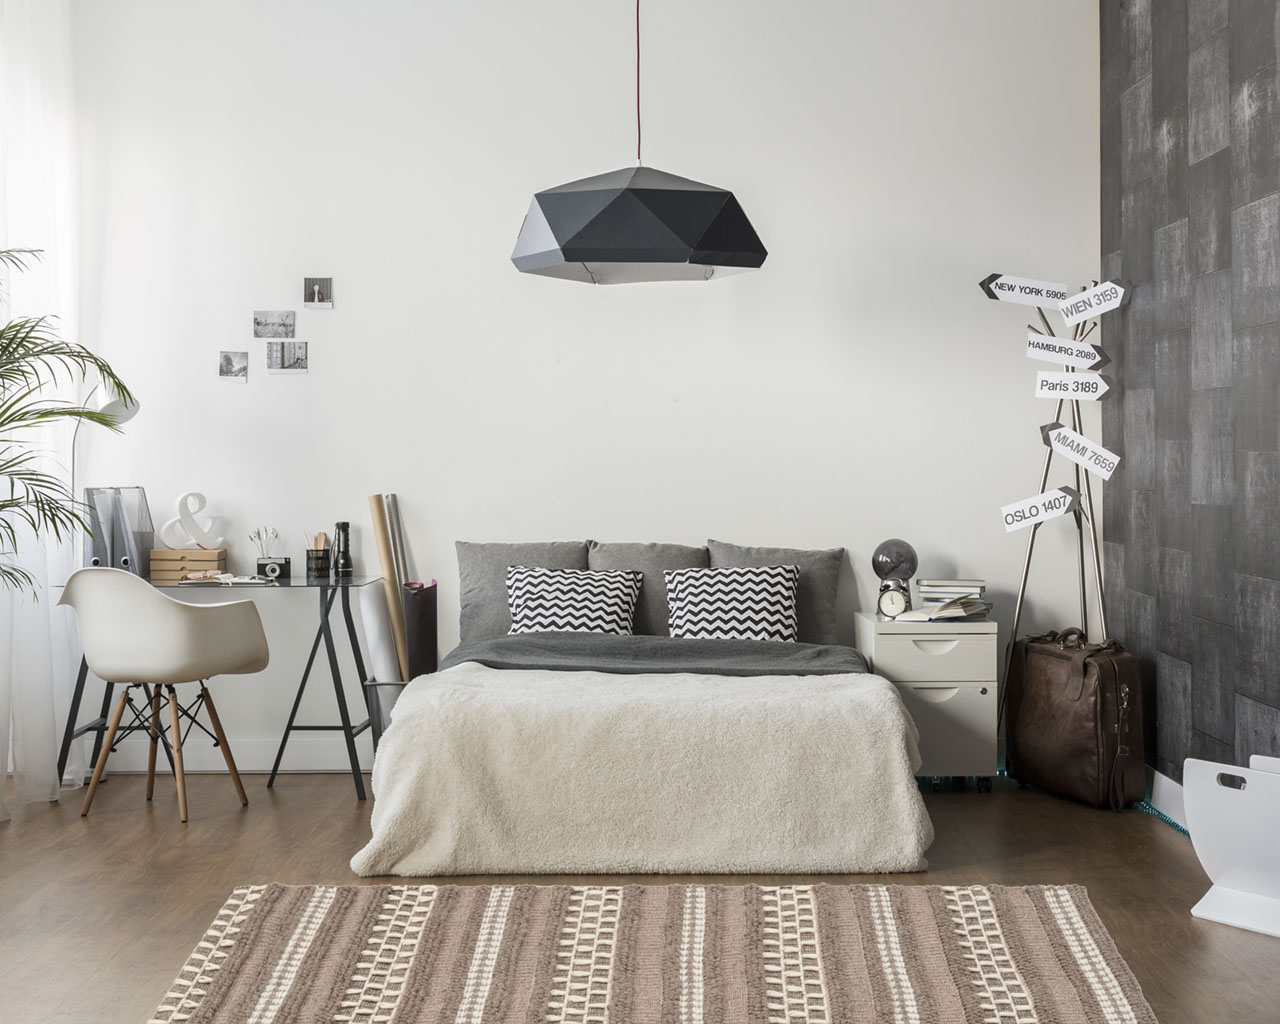 shop persian rugs bed room stylish